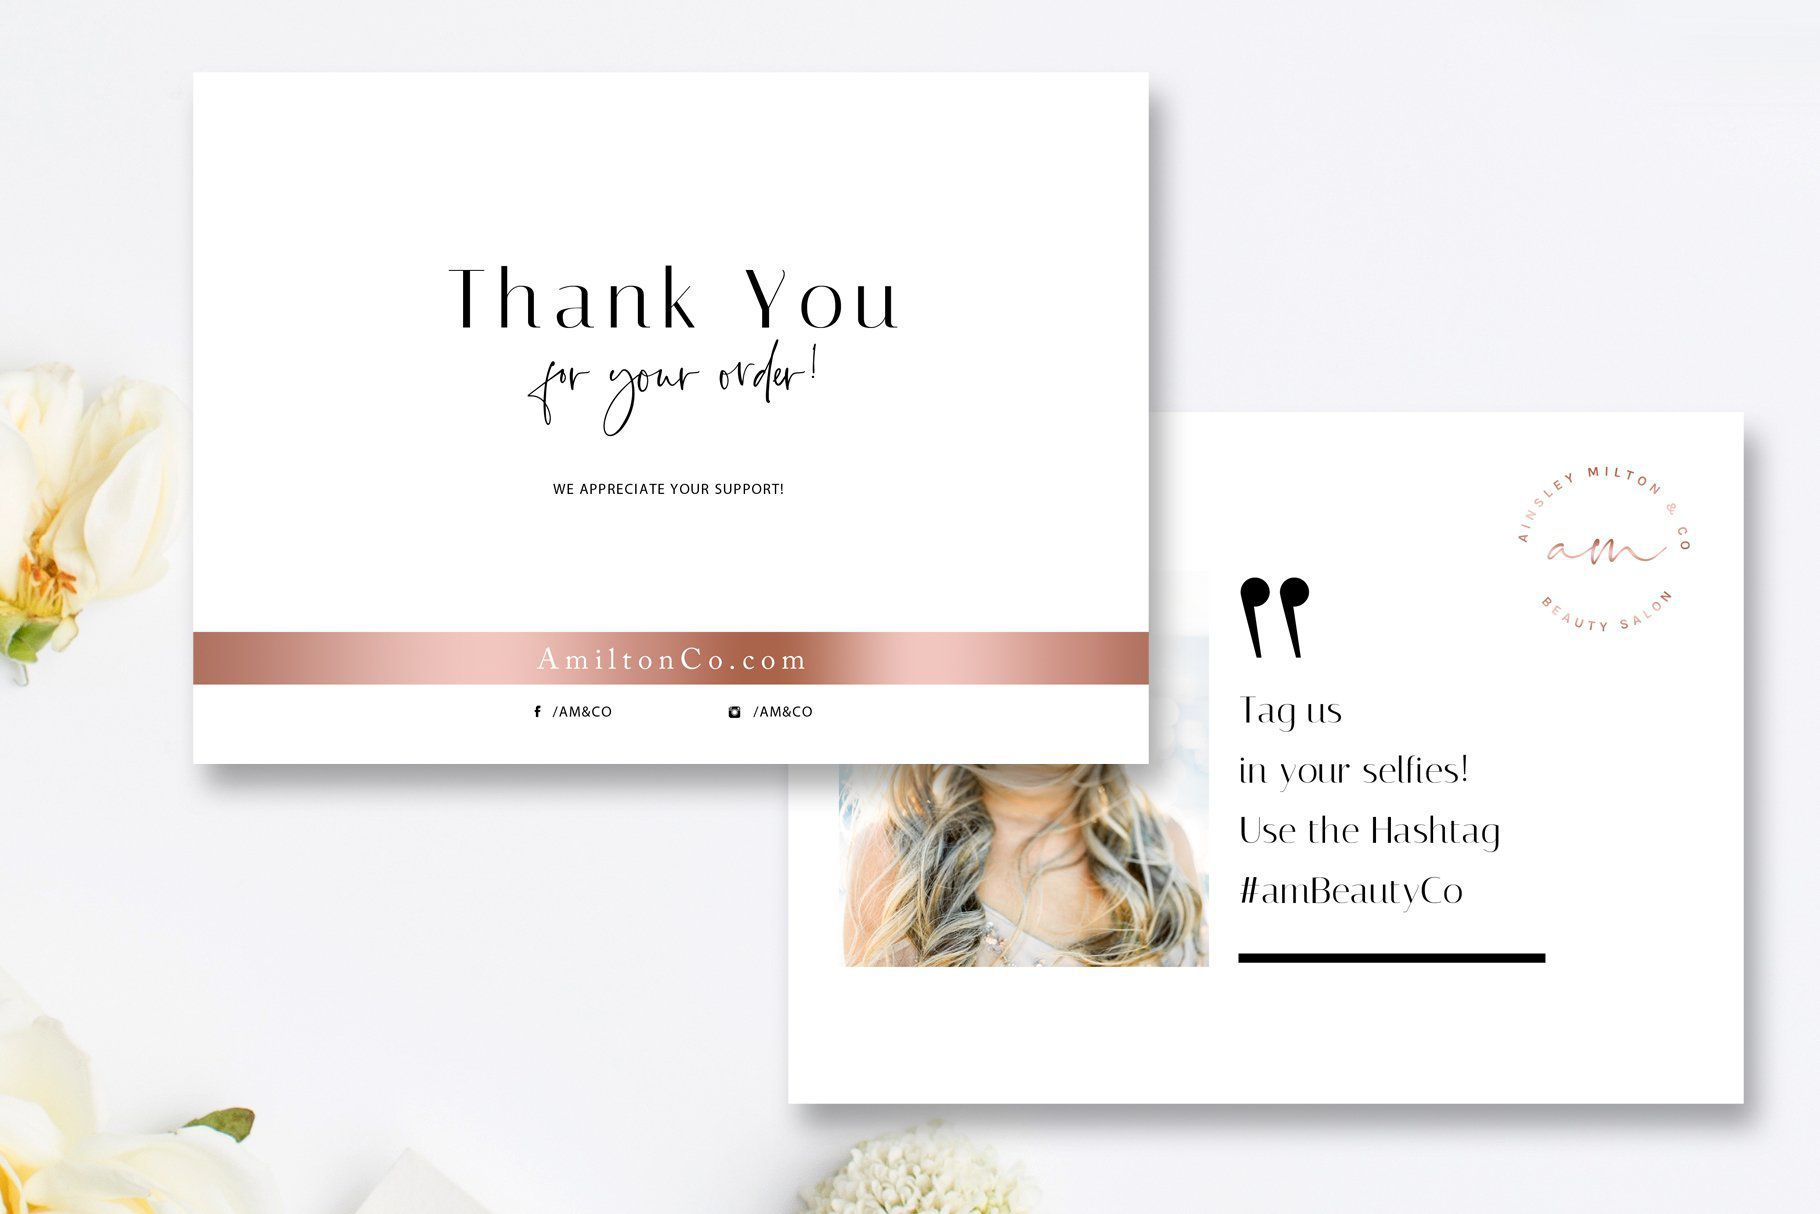 002 Frightening Wedding Thank You Card Template Psd Design  FreeFull